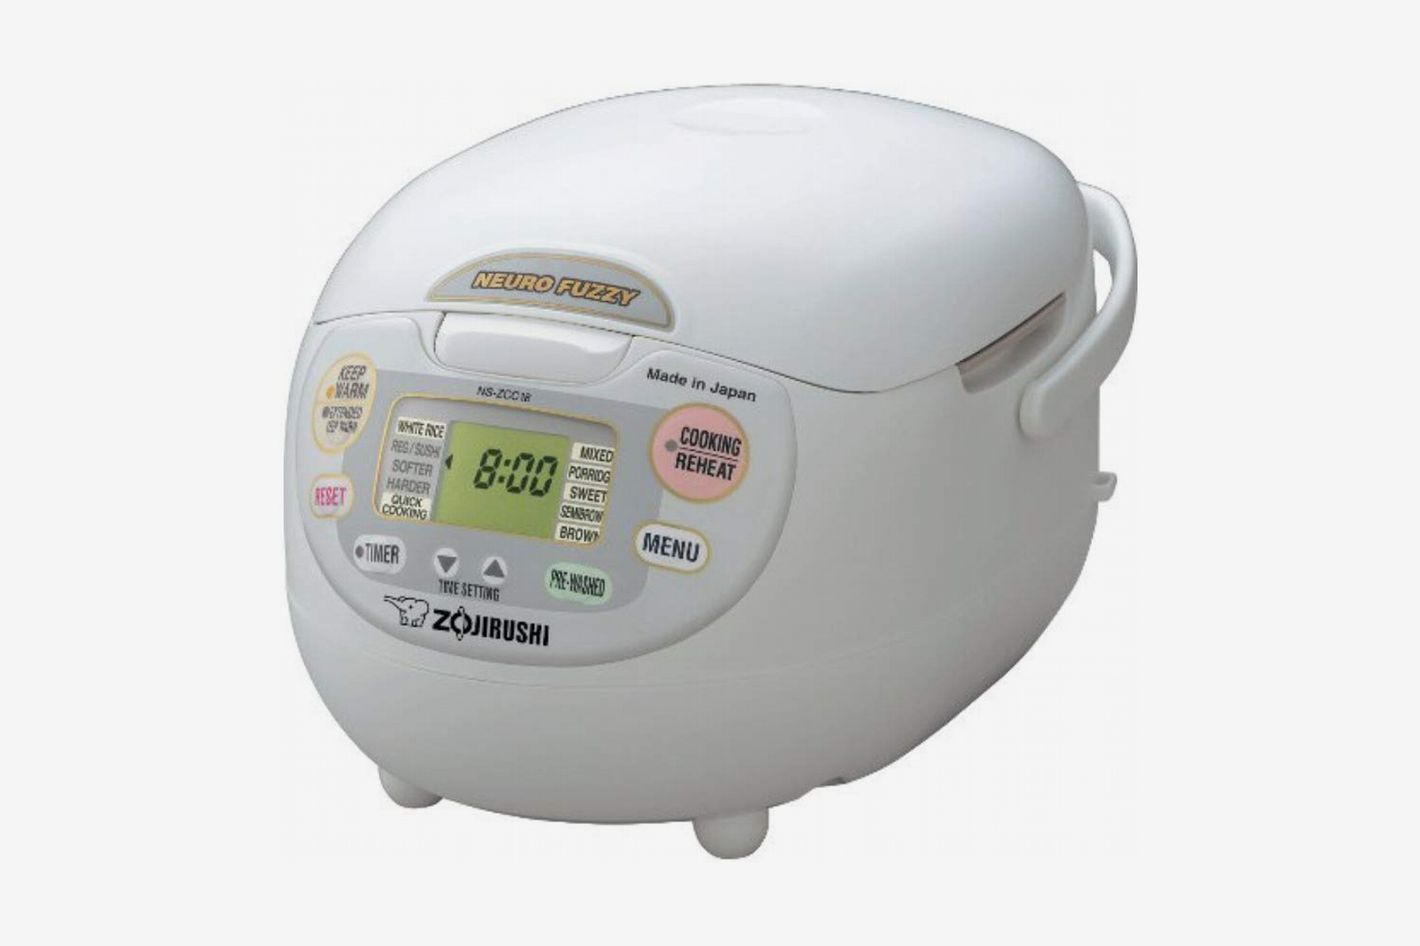 Zojirushi NS-ZCC18 10-Cup Neuro Fuzzy Rice Cooker, 1.8-Liters, Premium White